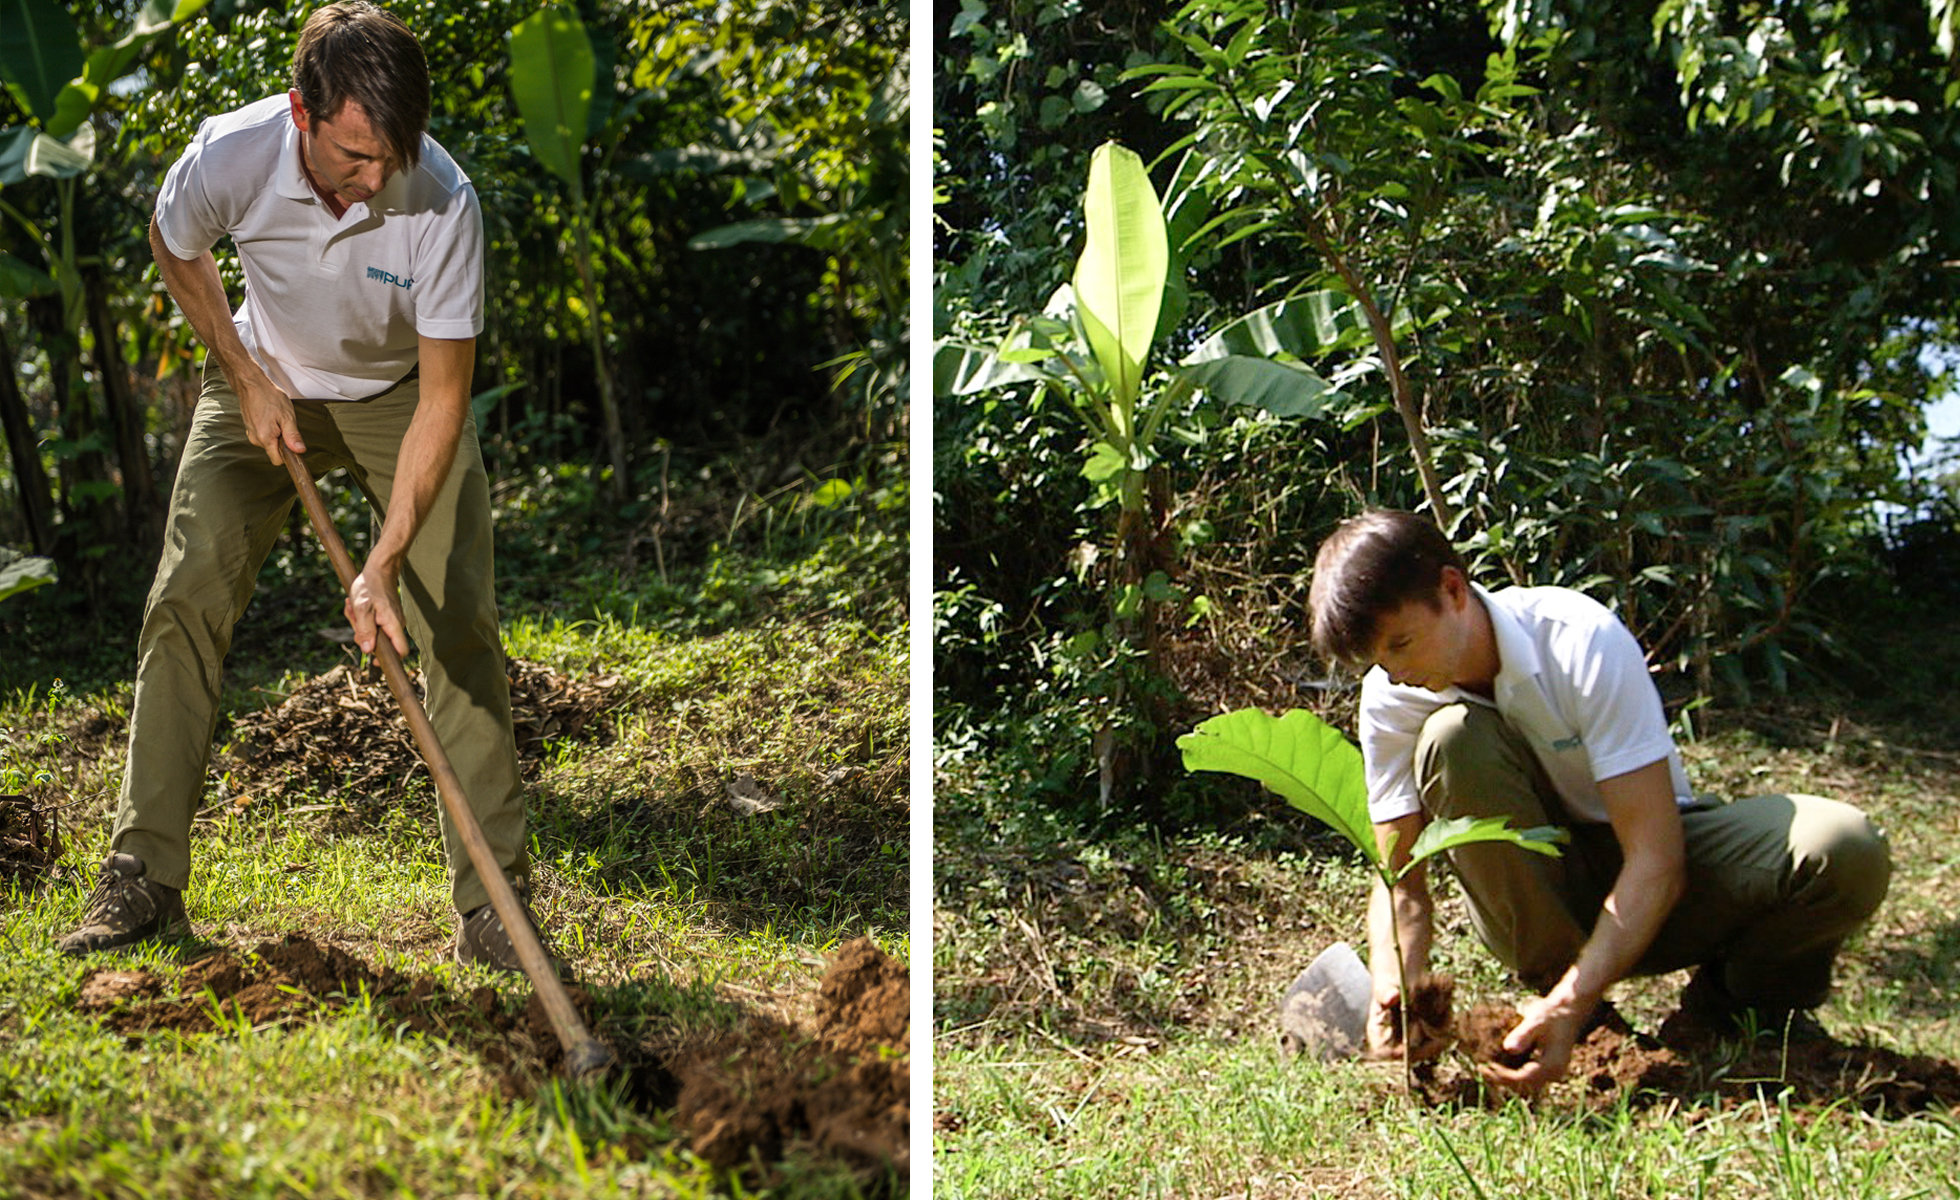 Photo: Caudalie co-founder Bertrand Thomas planting trees with the PUR Project in 2015.